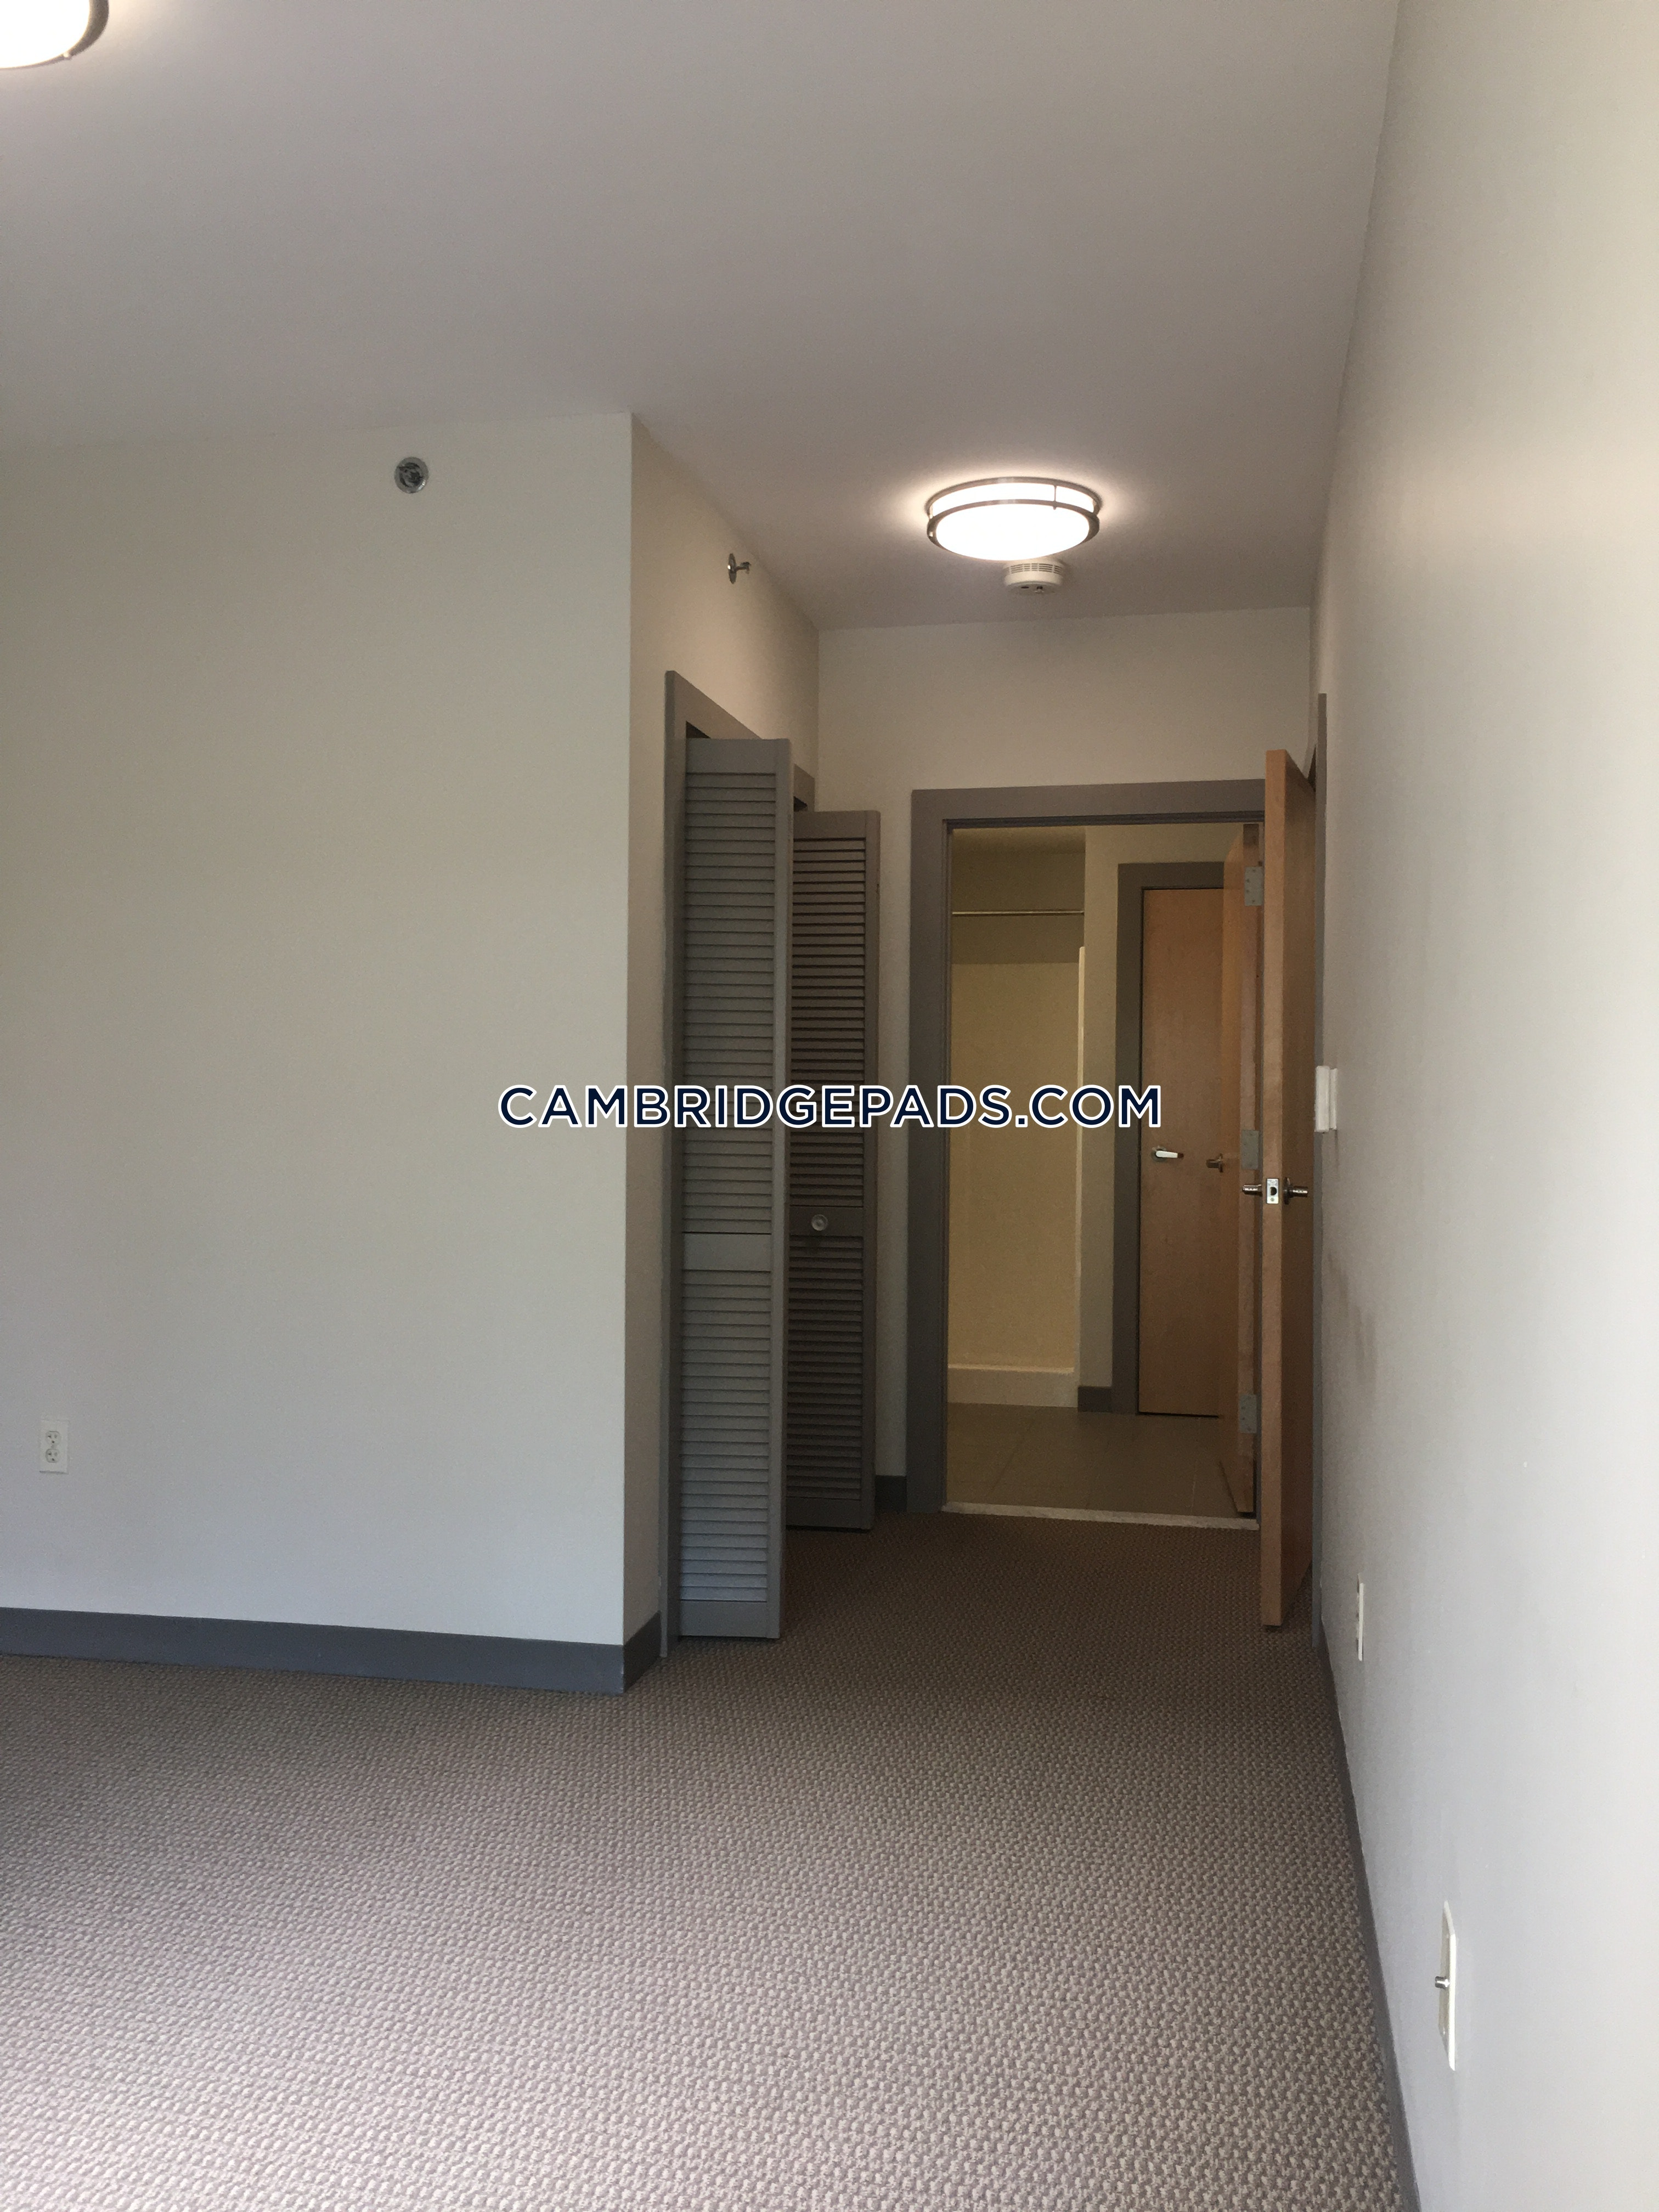 2 Beds 2 Baths - Cambridge - Kendall Square $3,200